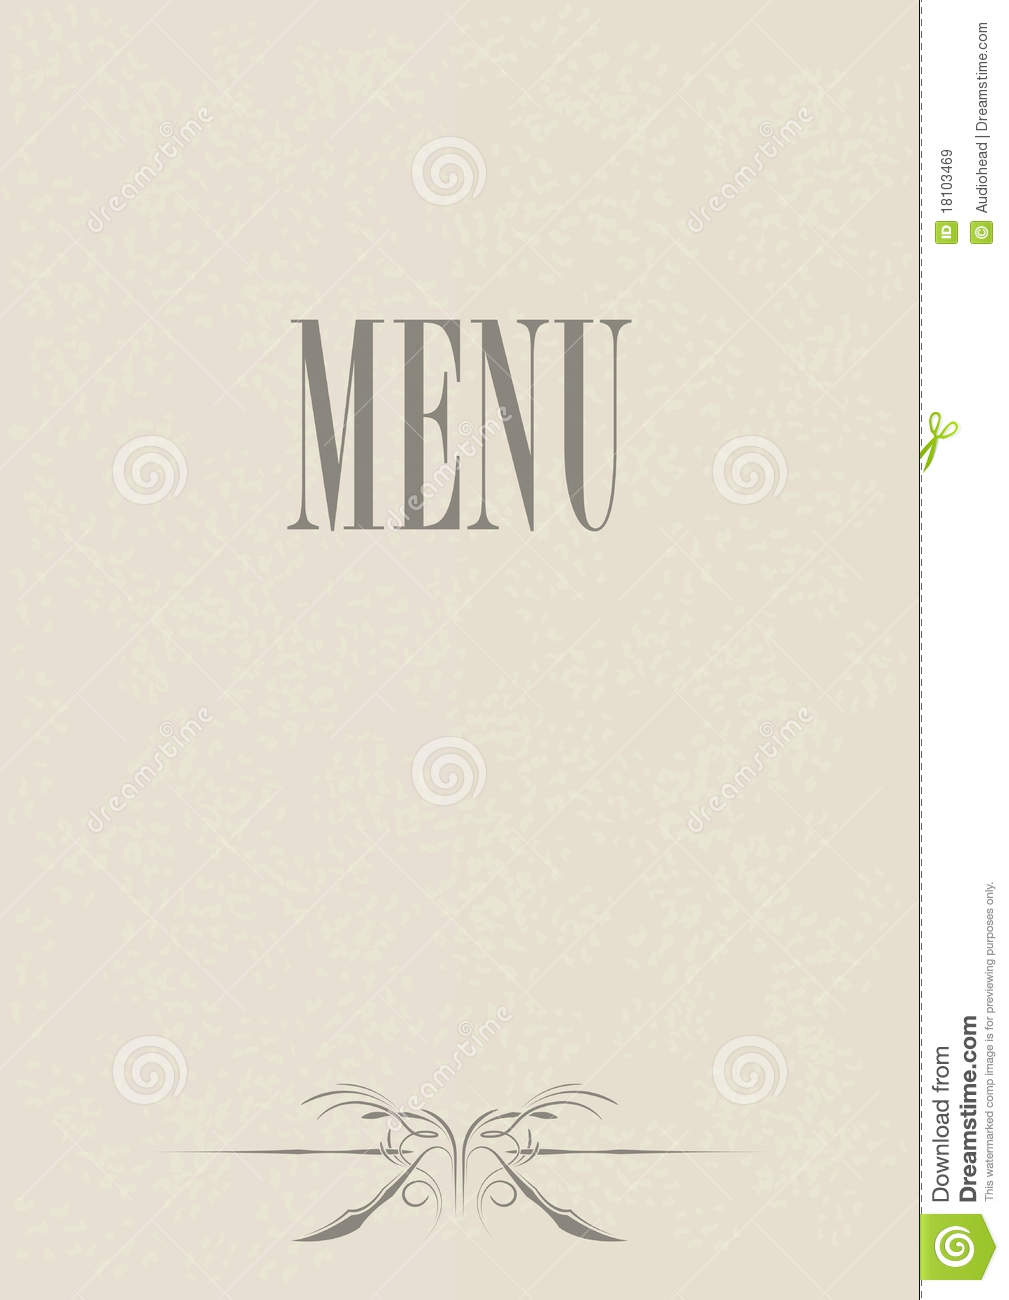 menu card design stock vector illustration of illustration 18103469